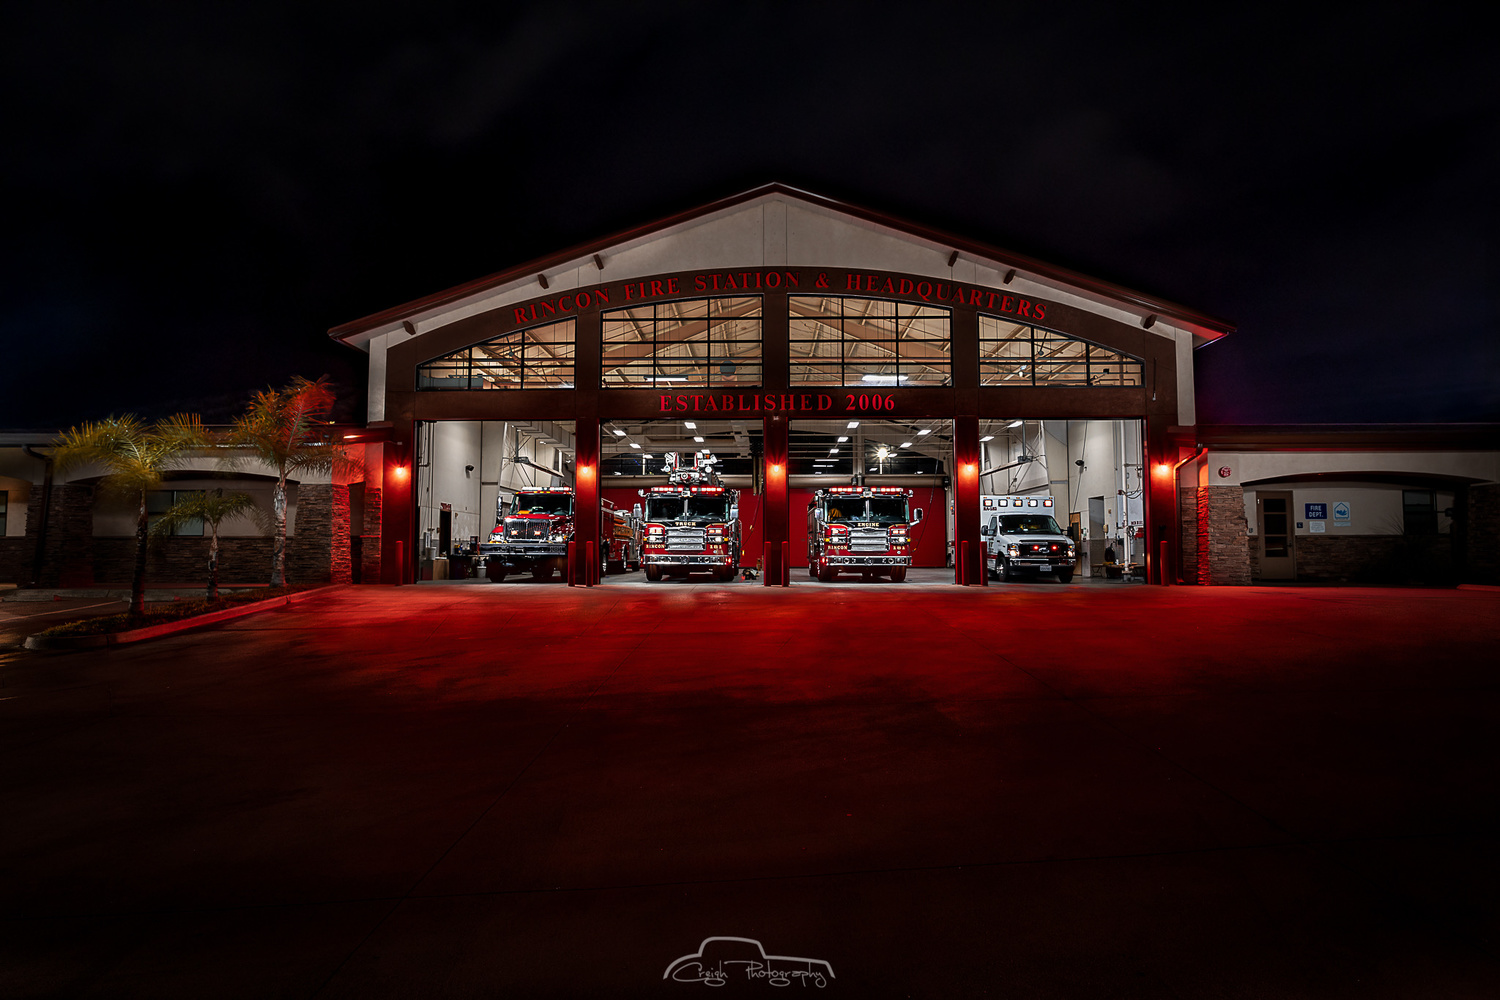 Rincon Fire Dept. by Creigh McIntyre